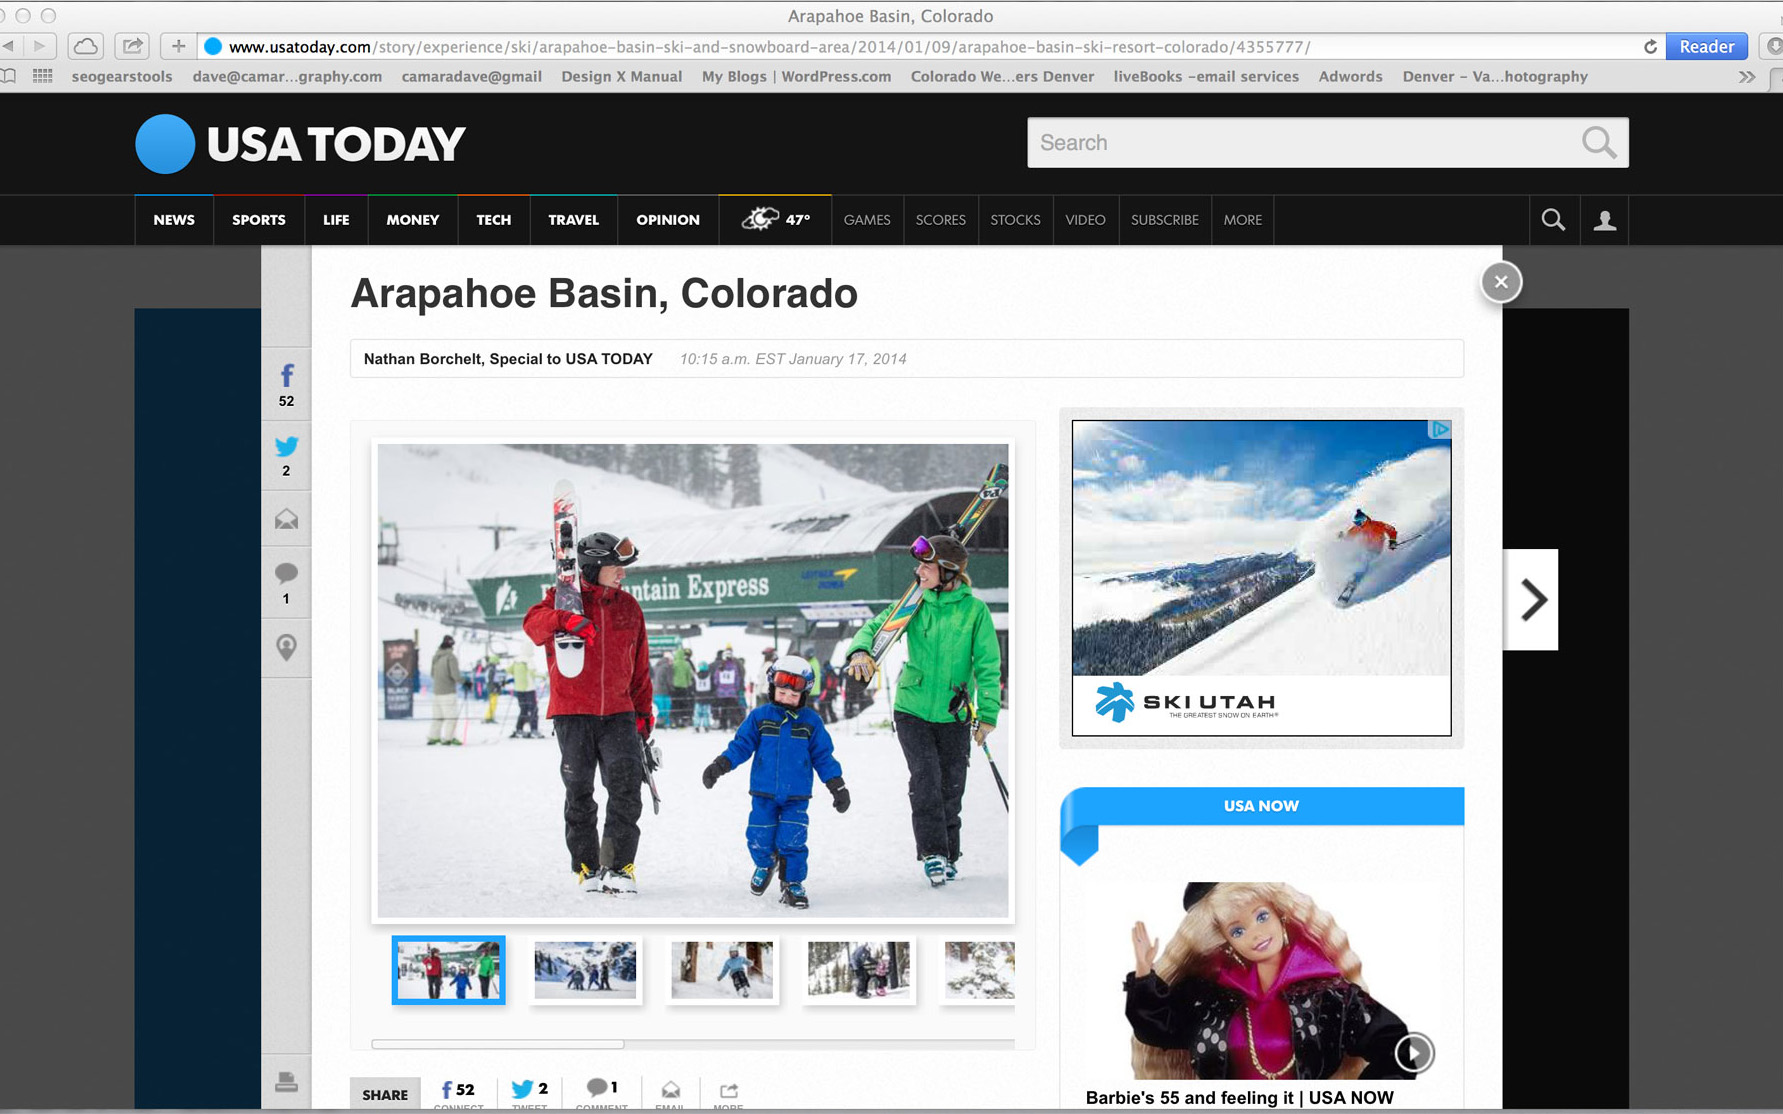 USA Today Arapahoe Basin Photos